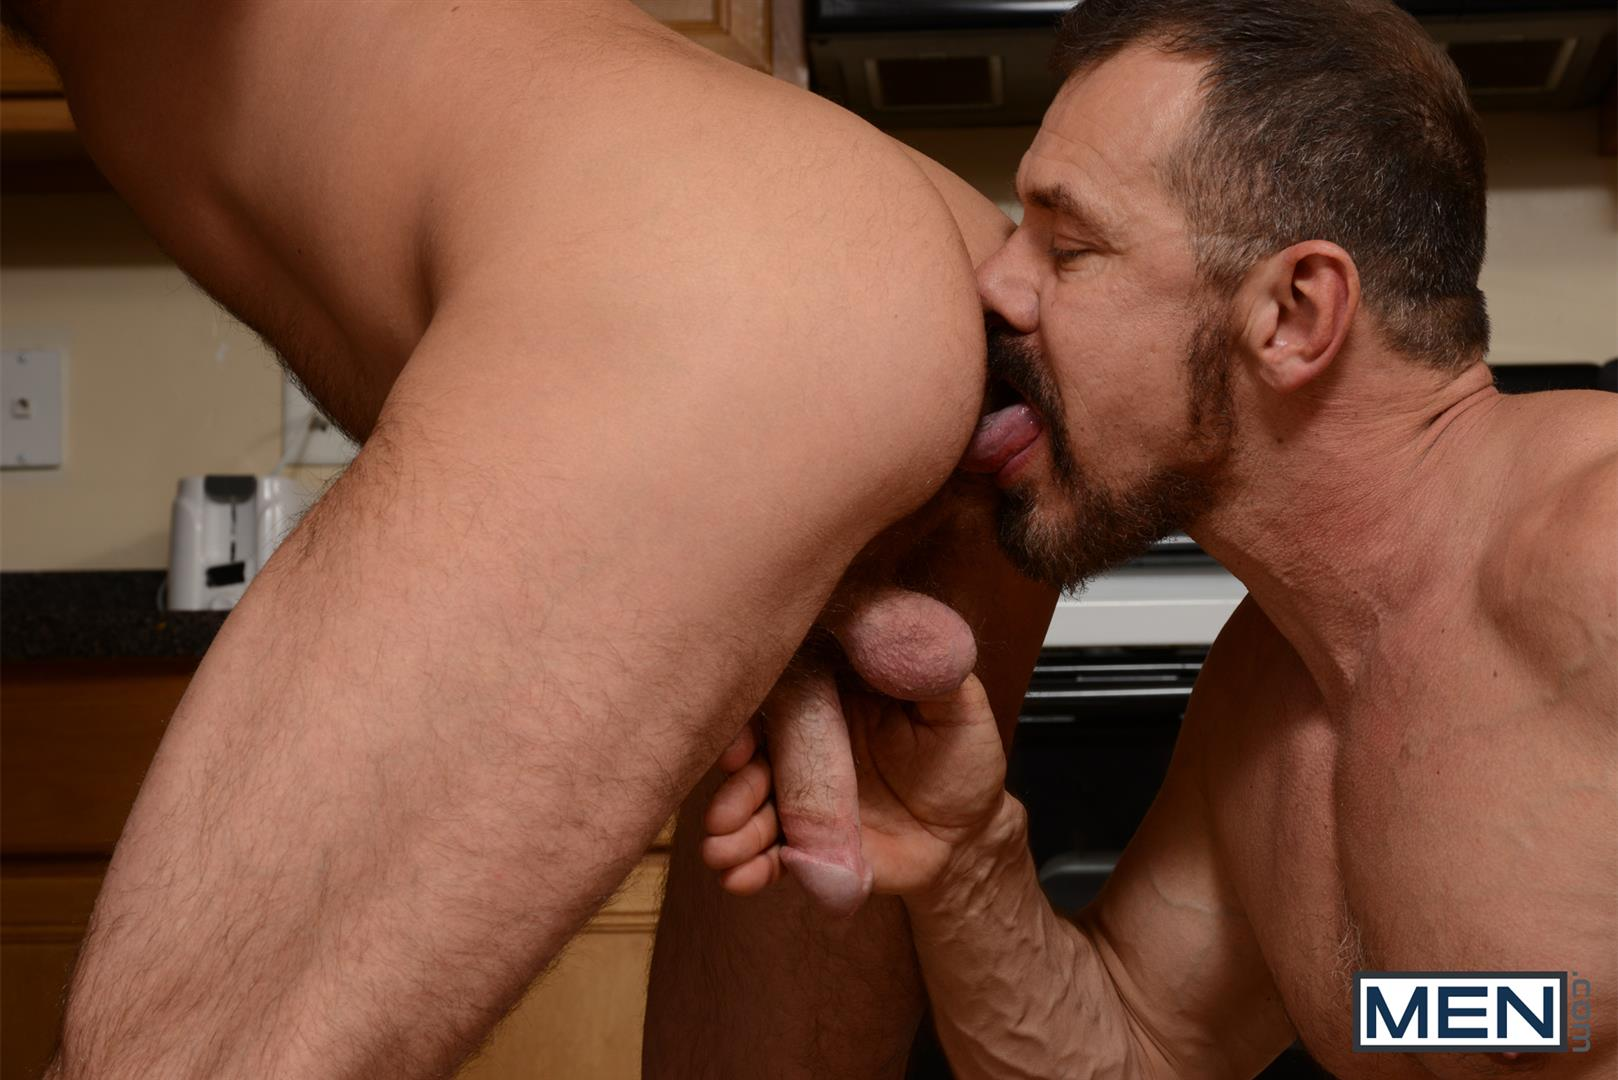 Men-Drill-My-Hole-Max-Sargent-and-Mike-Tanner-Thick-Cock-Daddys-Fucking-Amateur-Gay-Porn-05 Hairy Muscle Daddy's Fucking In The Kitchen And Eating Cum